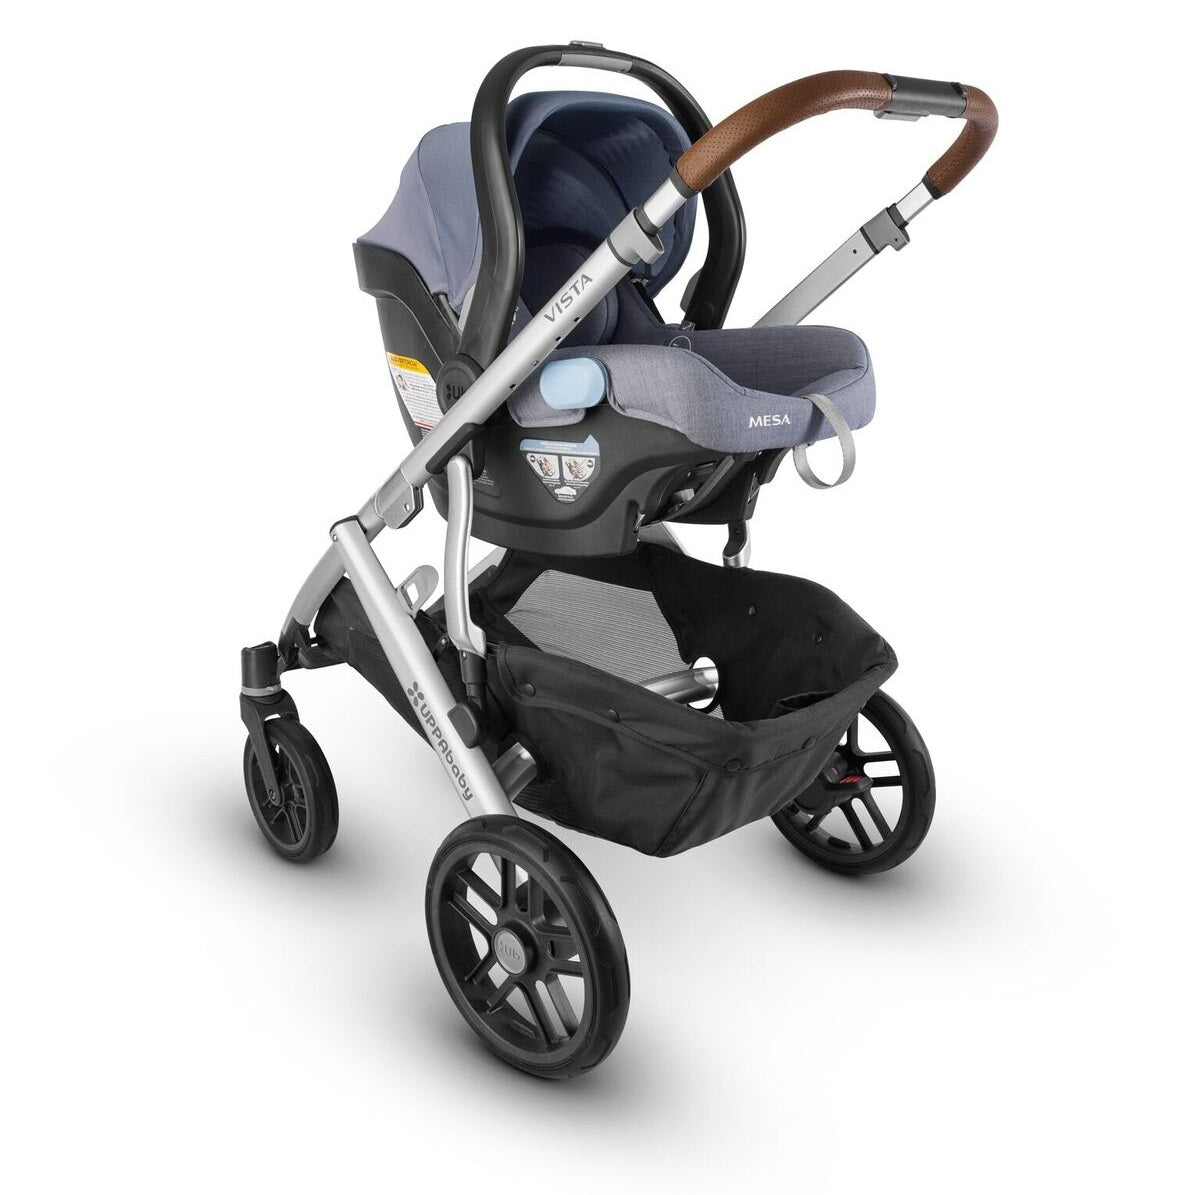 UPPAbaby MESA 2018 Infant Car Seat In Henry On Vista Stroller